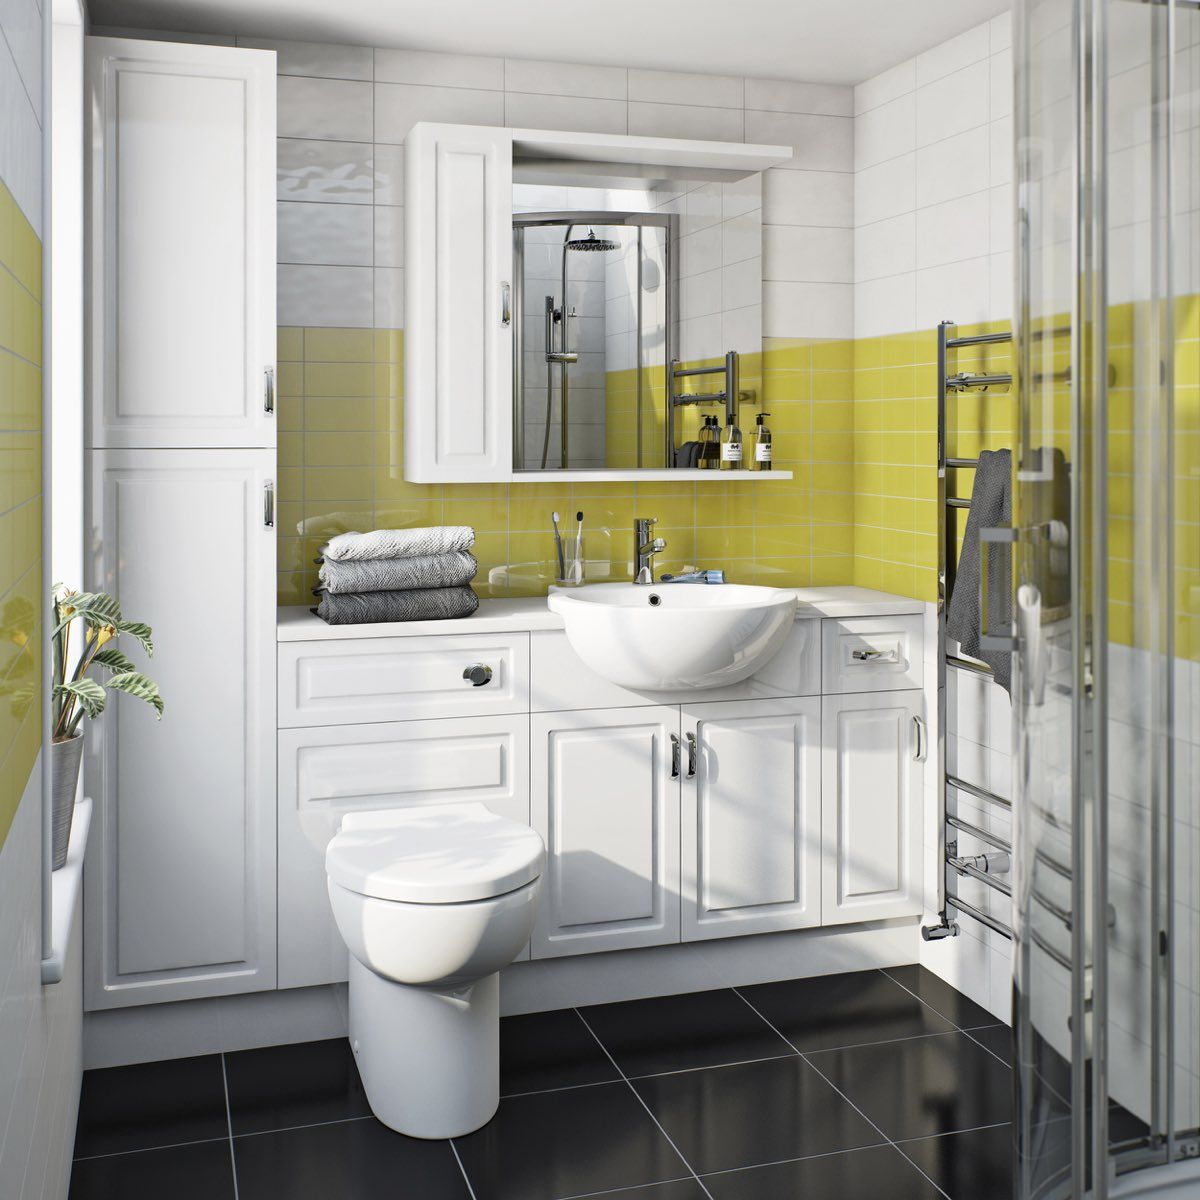 orchard florence straight ensuite storage unit pack with white top | fitted bathroom furniture